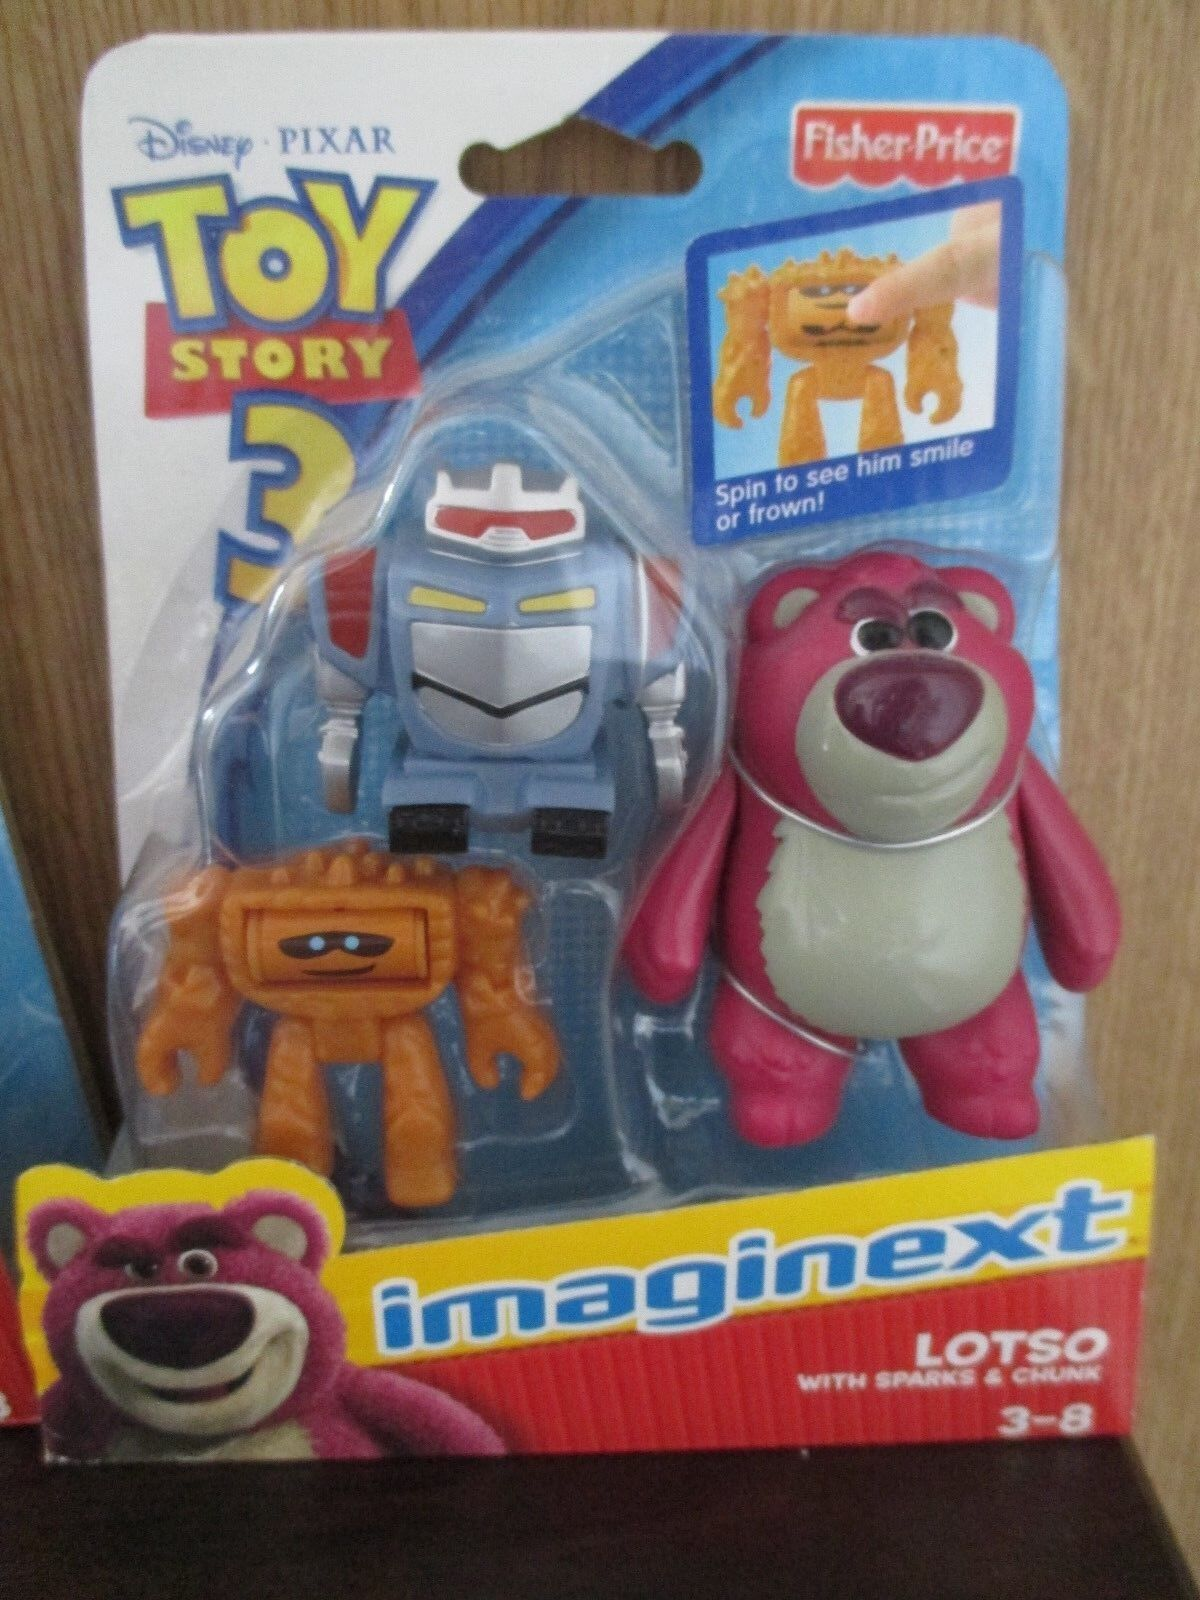 Imaginext Imaginext Imaginext Toy Story 3 Buzz Lightyear Spaceship Woody Bullseye Lotso Chunk Sparks ace7a8